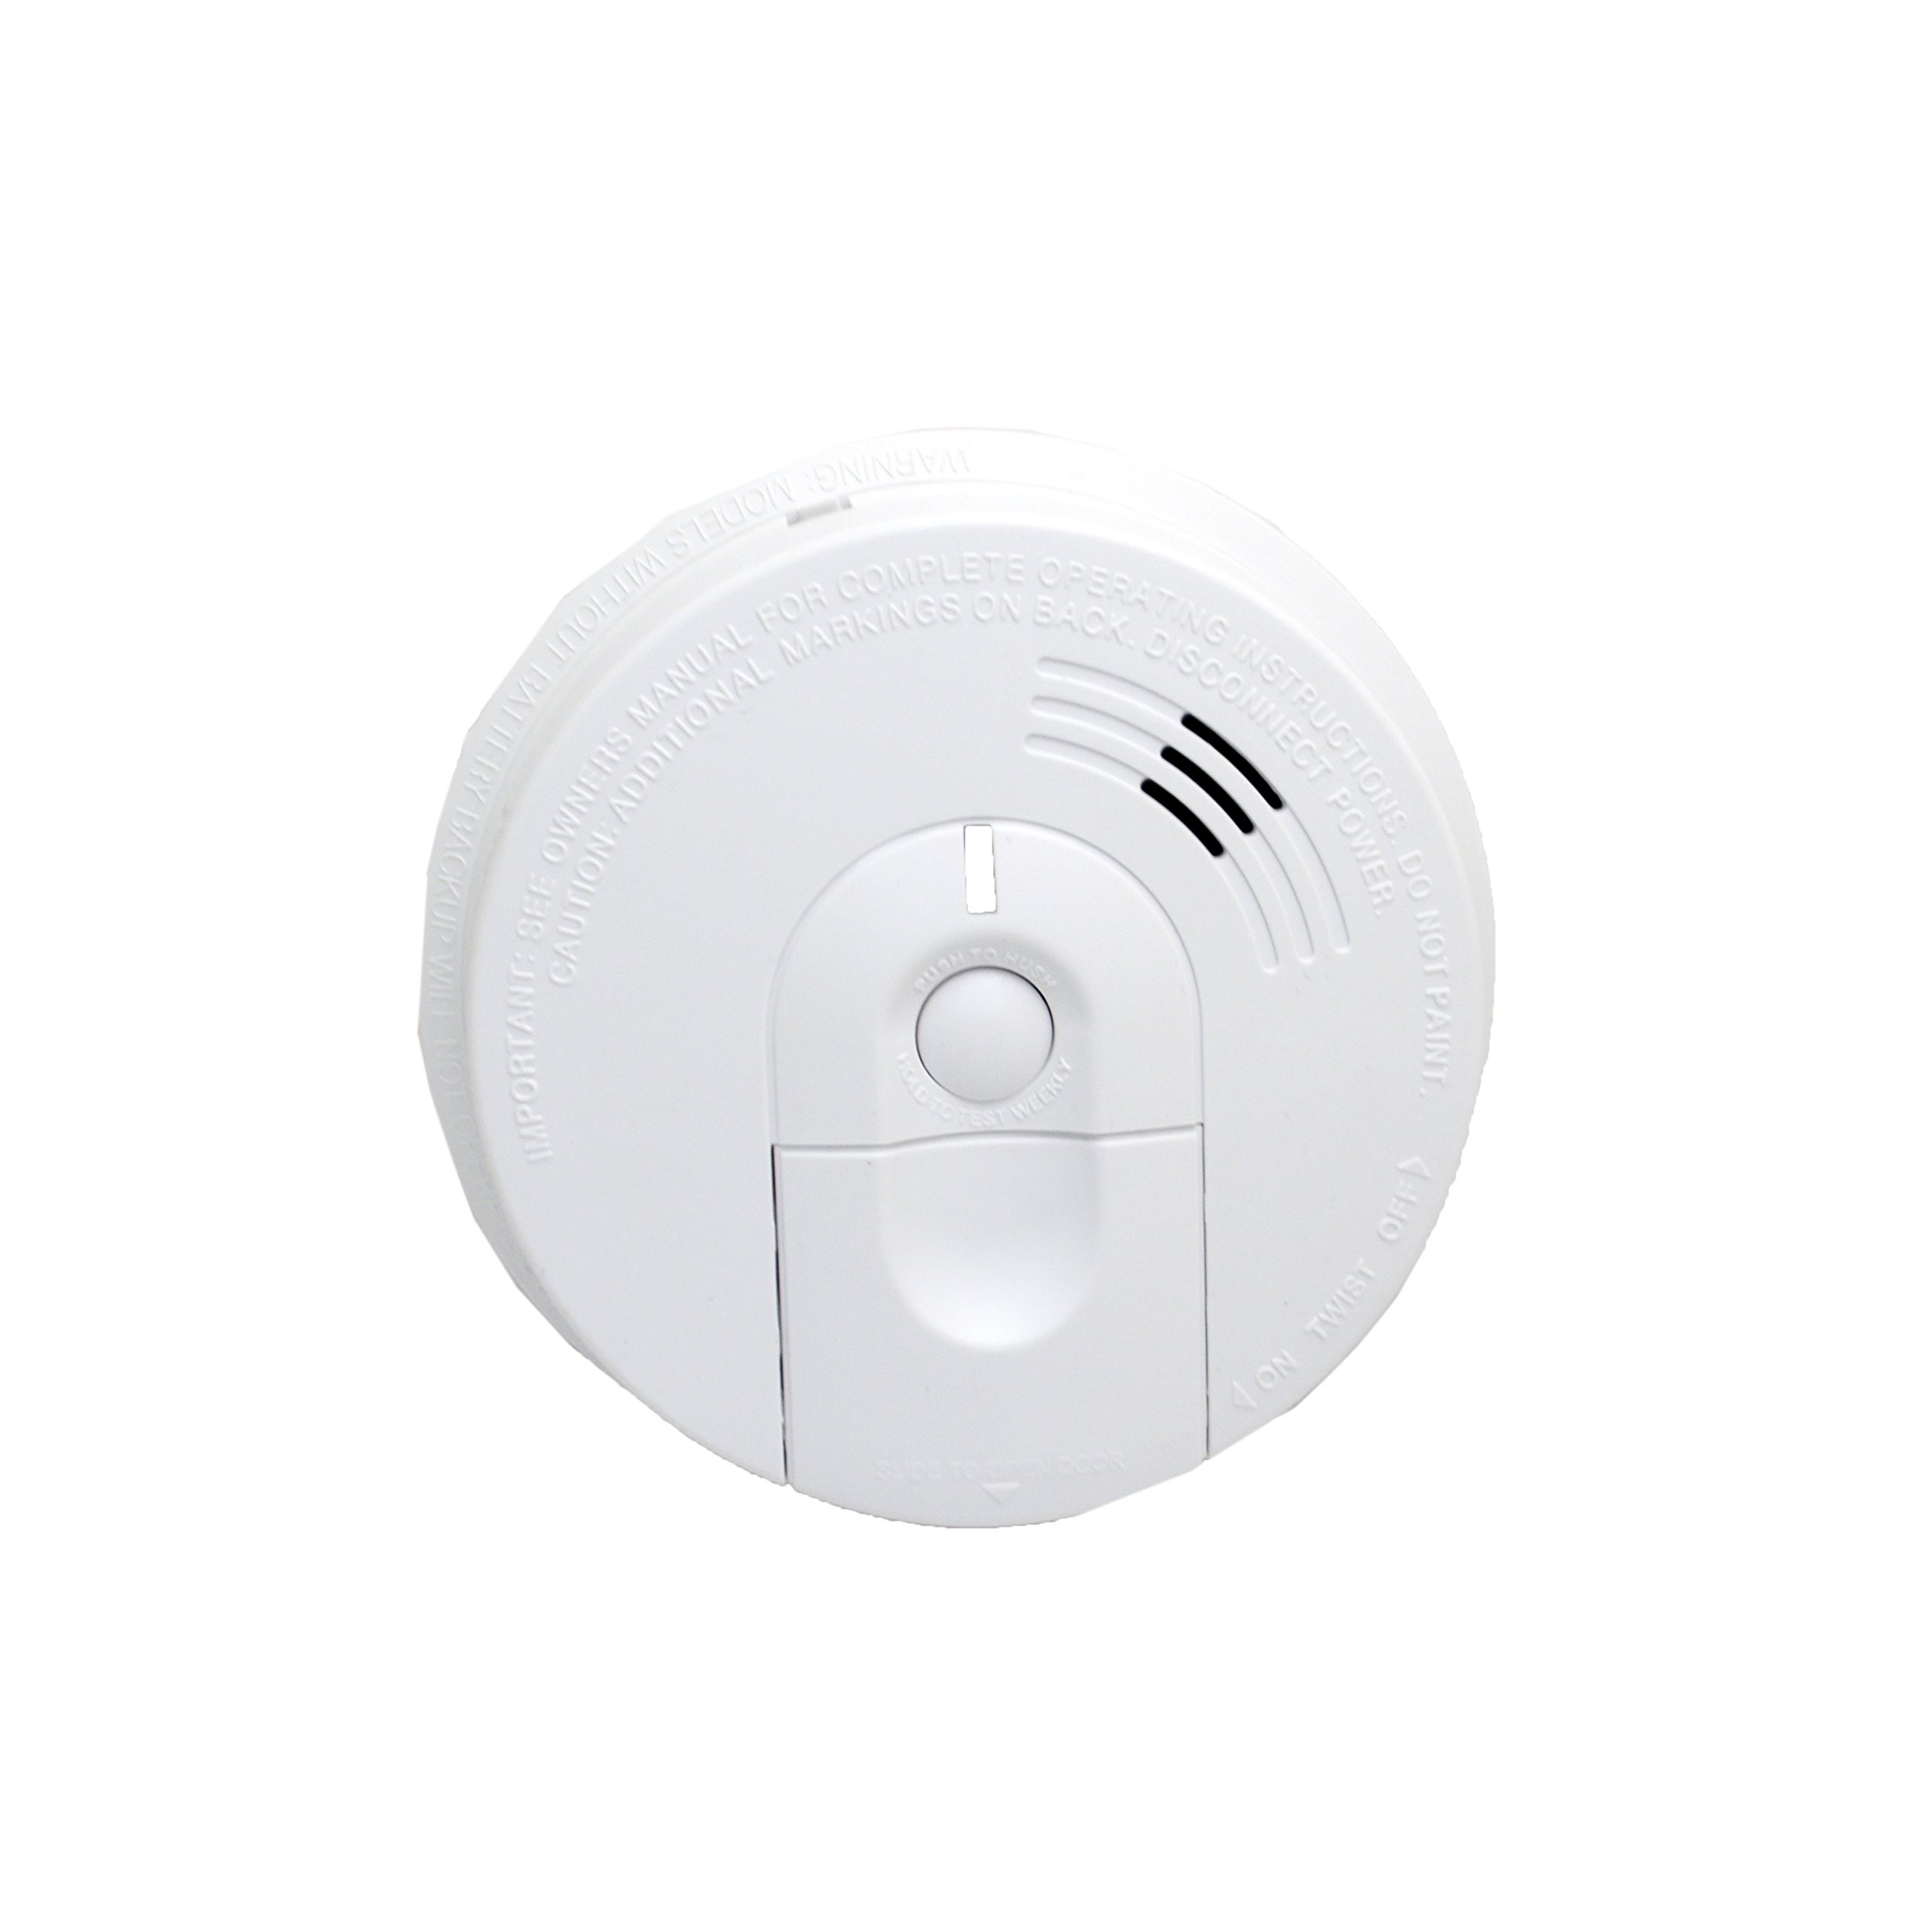 Minigadgets Hard-wired Smoke Detector with WIFI Hidden Camera & 16GB MicroSd Card Included by Mini Gadgets